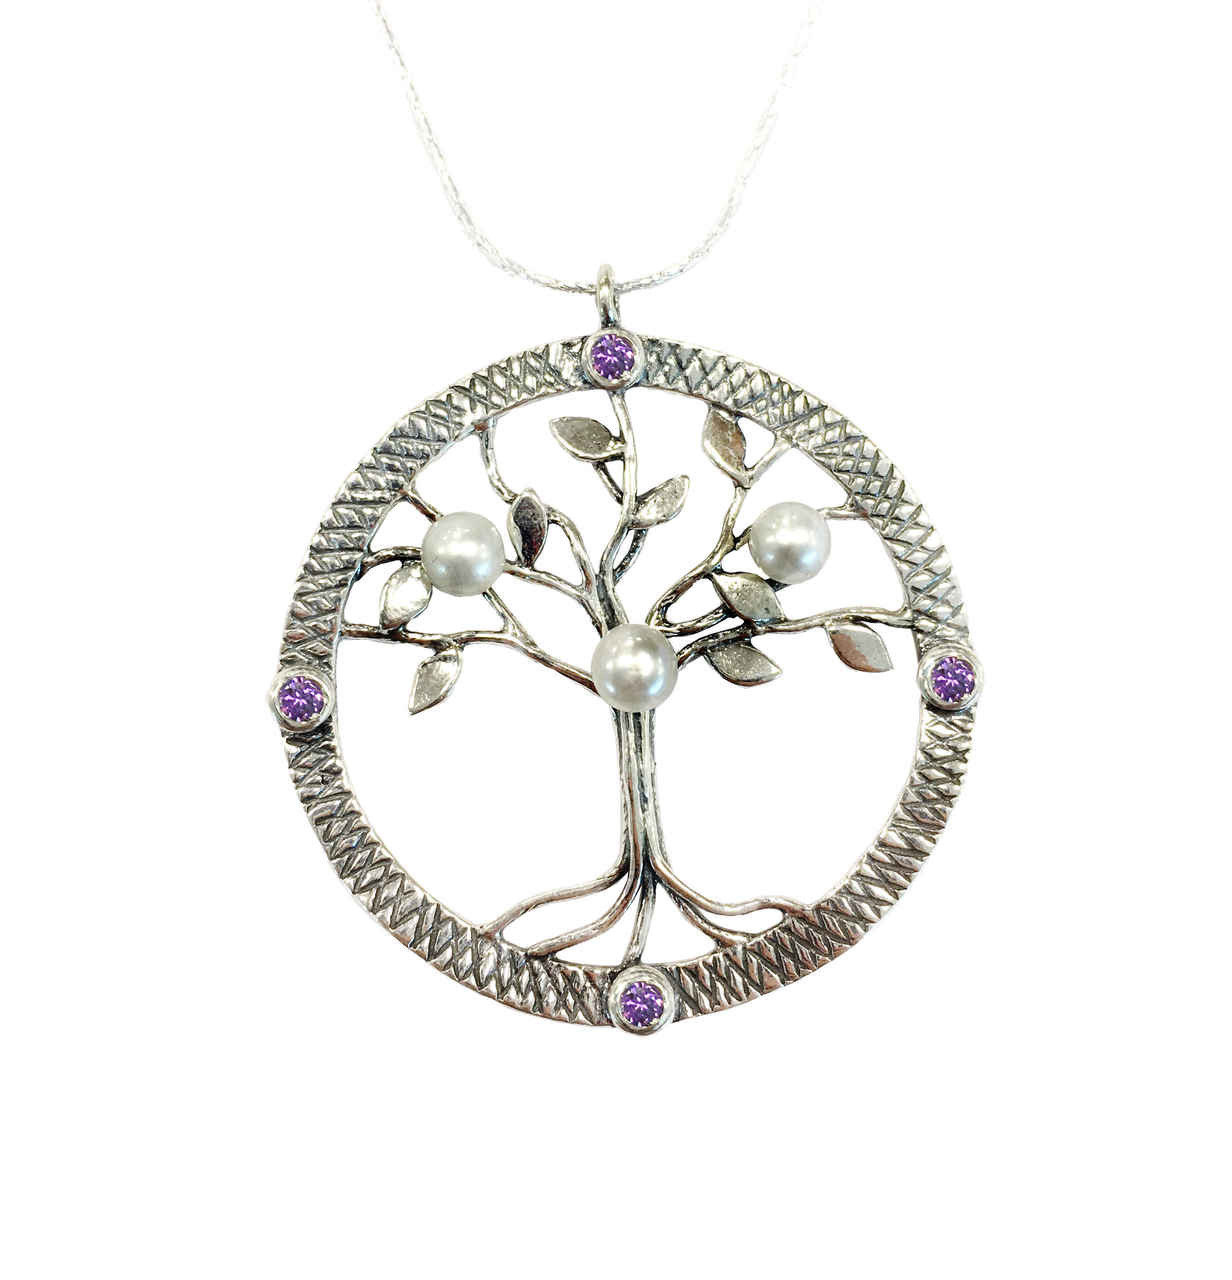 N03004 - AM - Large pendant with beautiful Tree of Life with Pearls and  Amethyst cubic zirconia